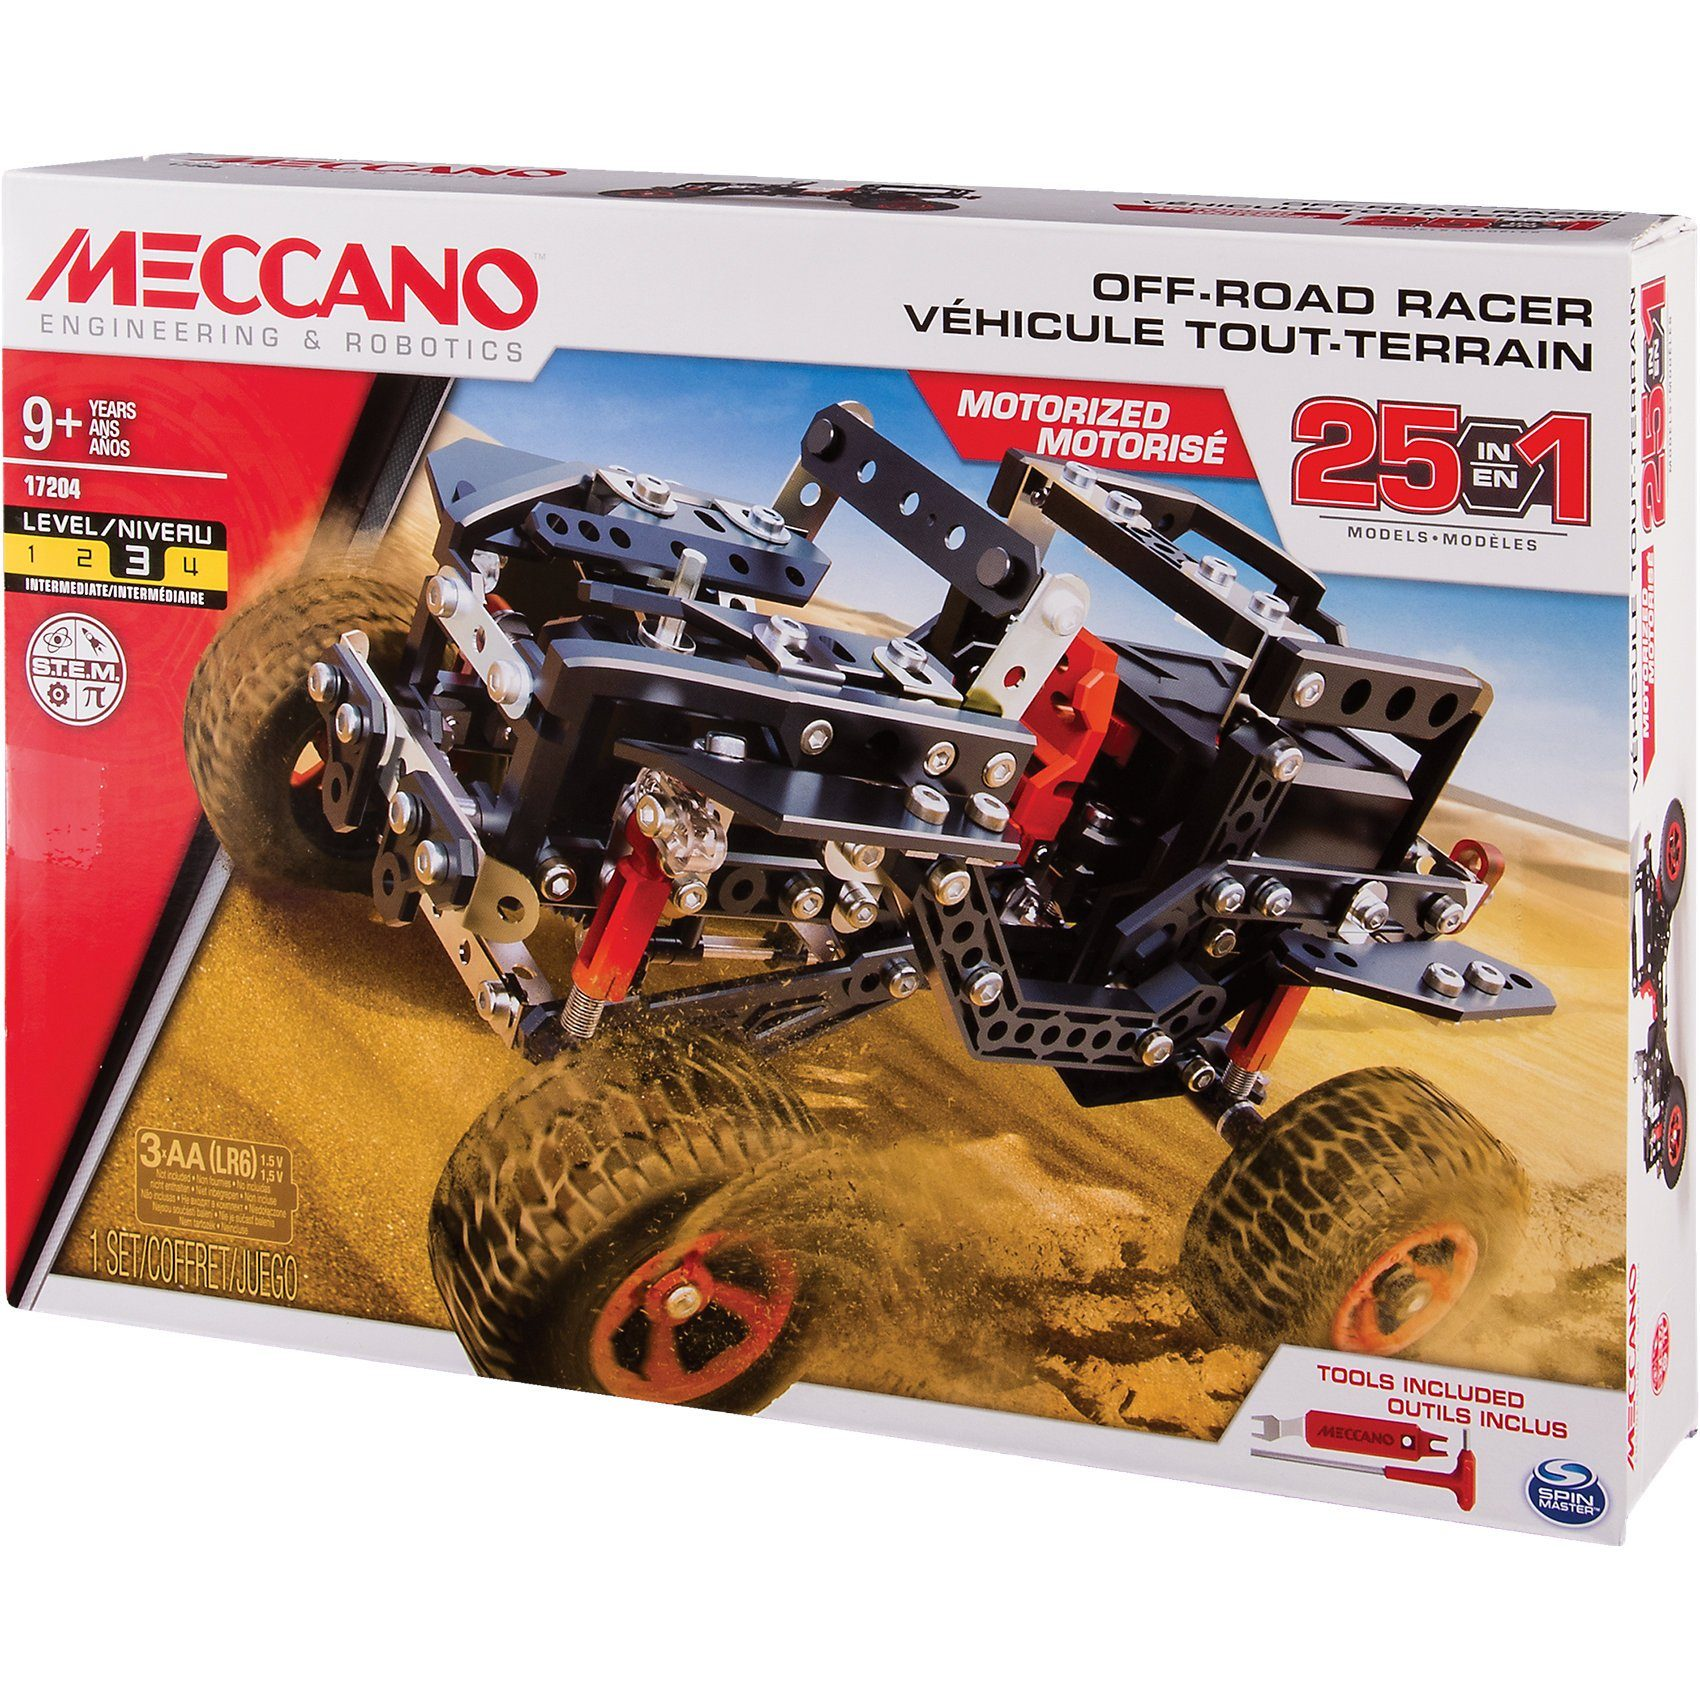 Spin Master Meccano 25 Modell Set - Offroad Race car